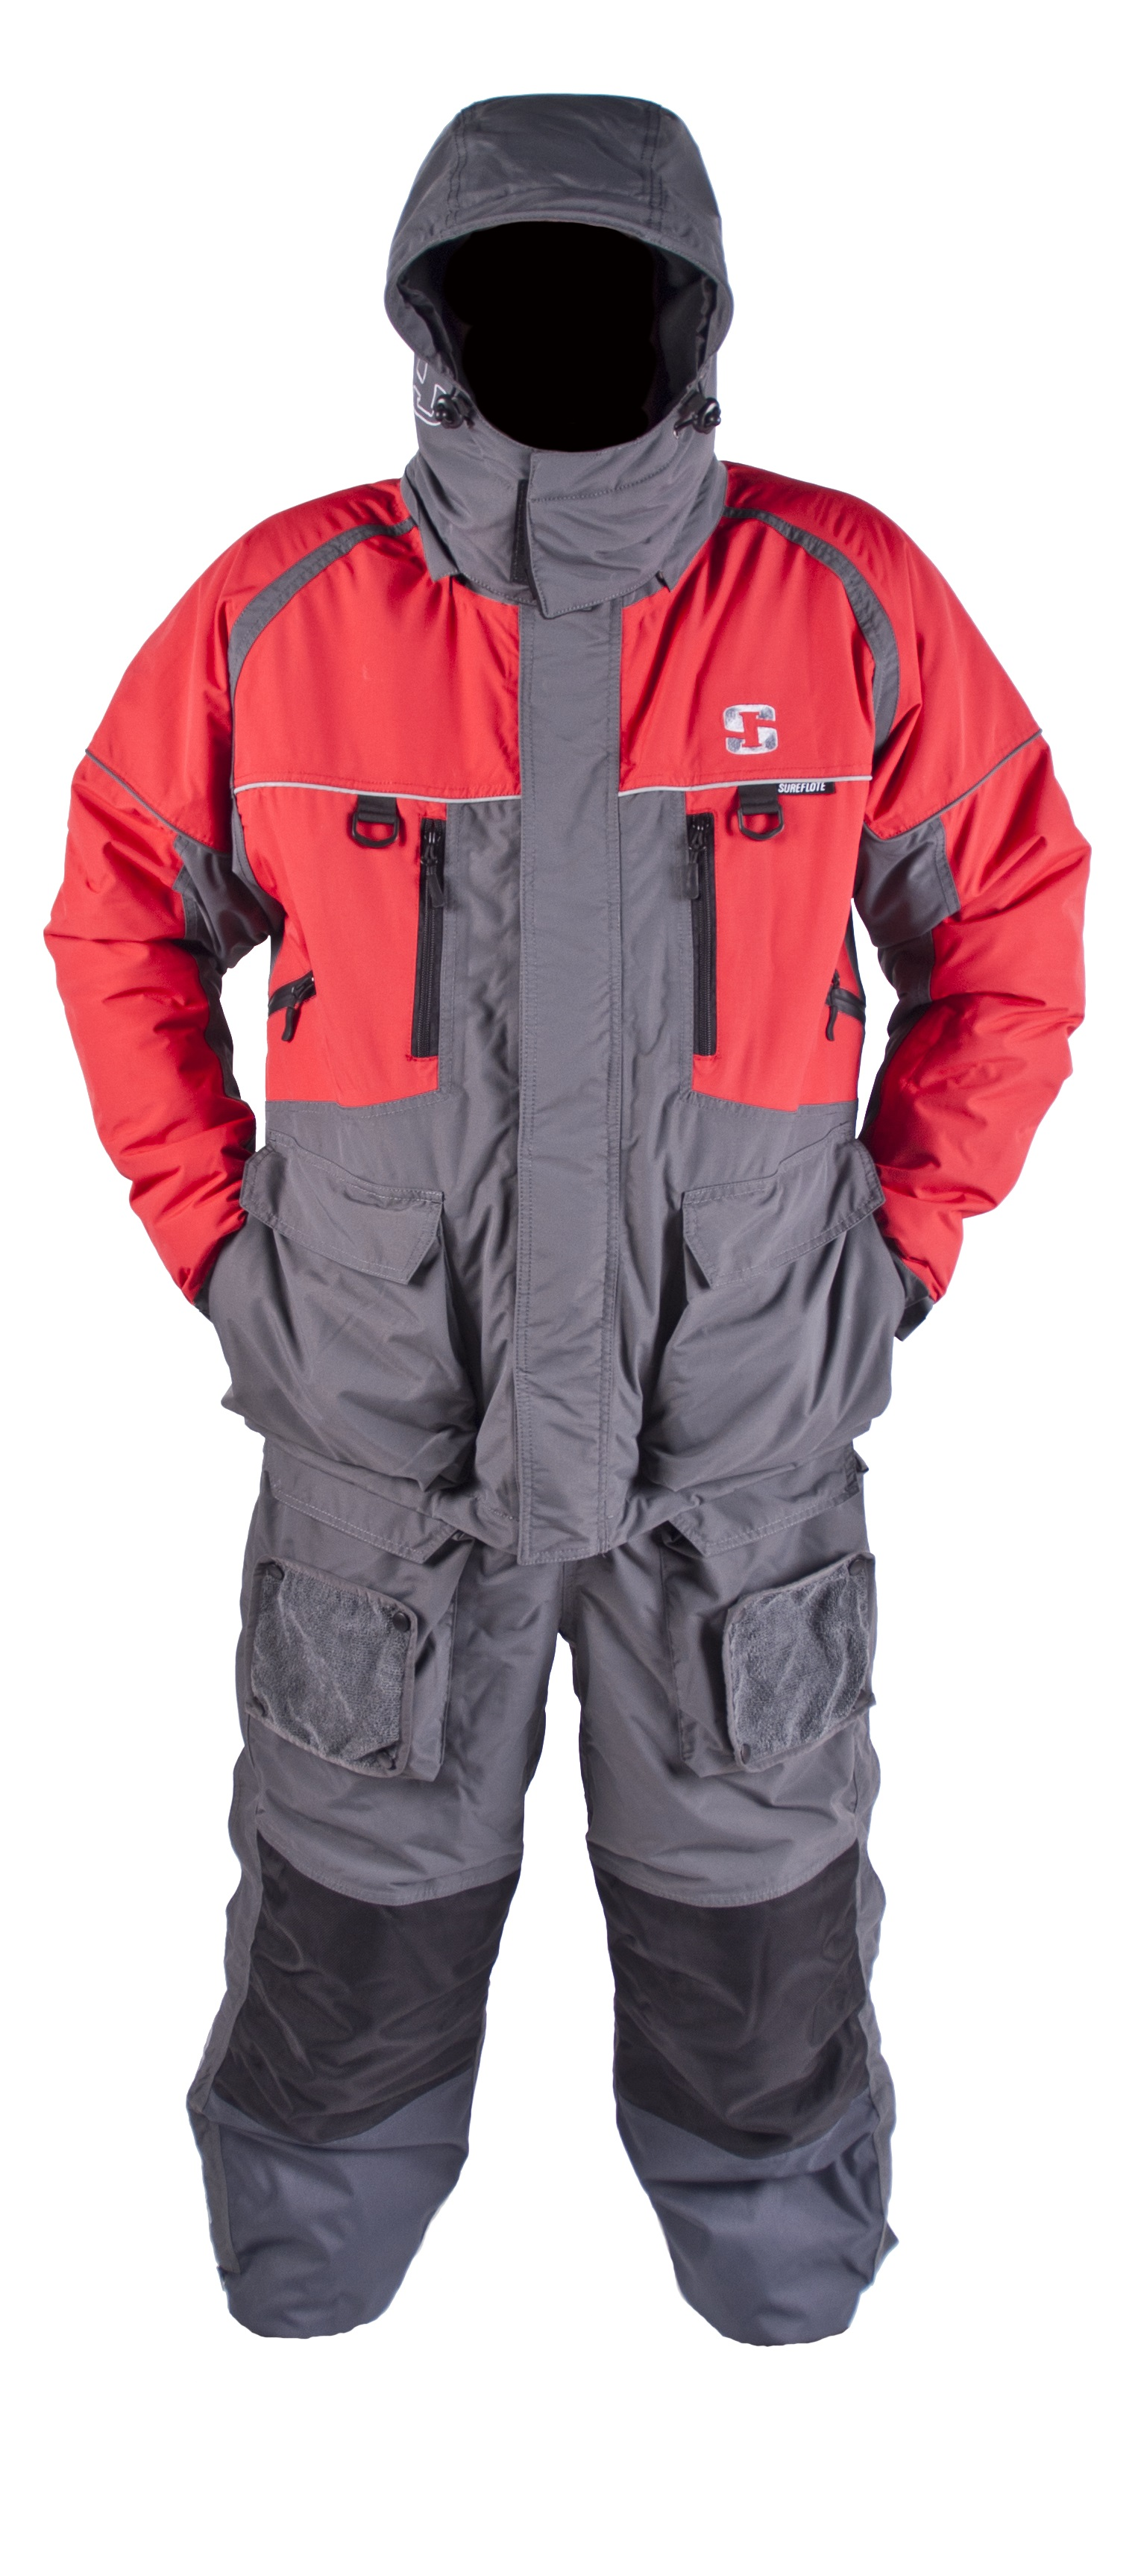 Striker ice predator suit kabele 39 s trading post for Ice fishing suits